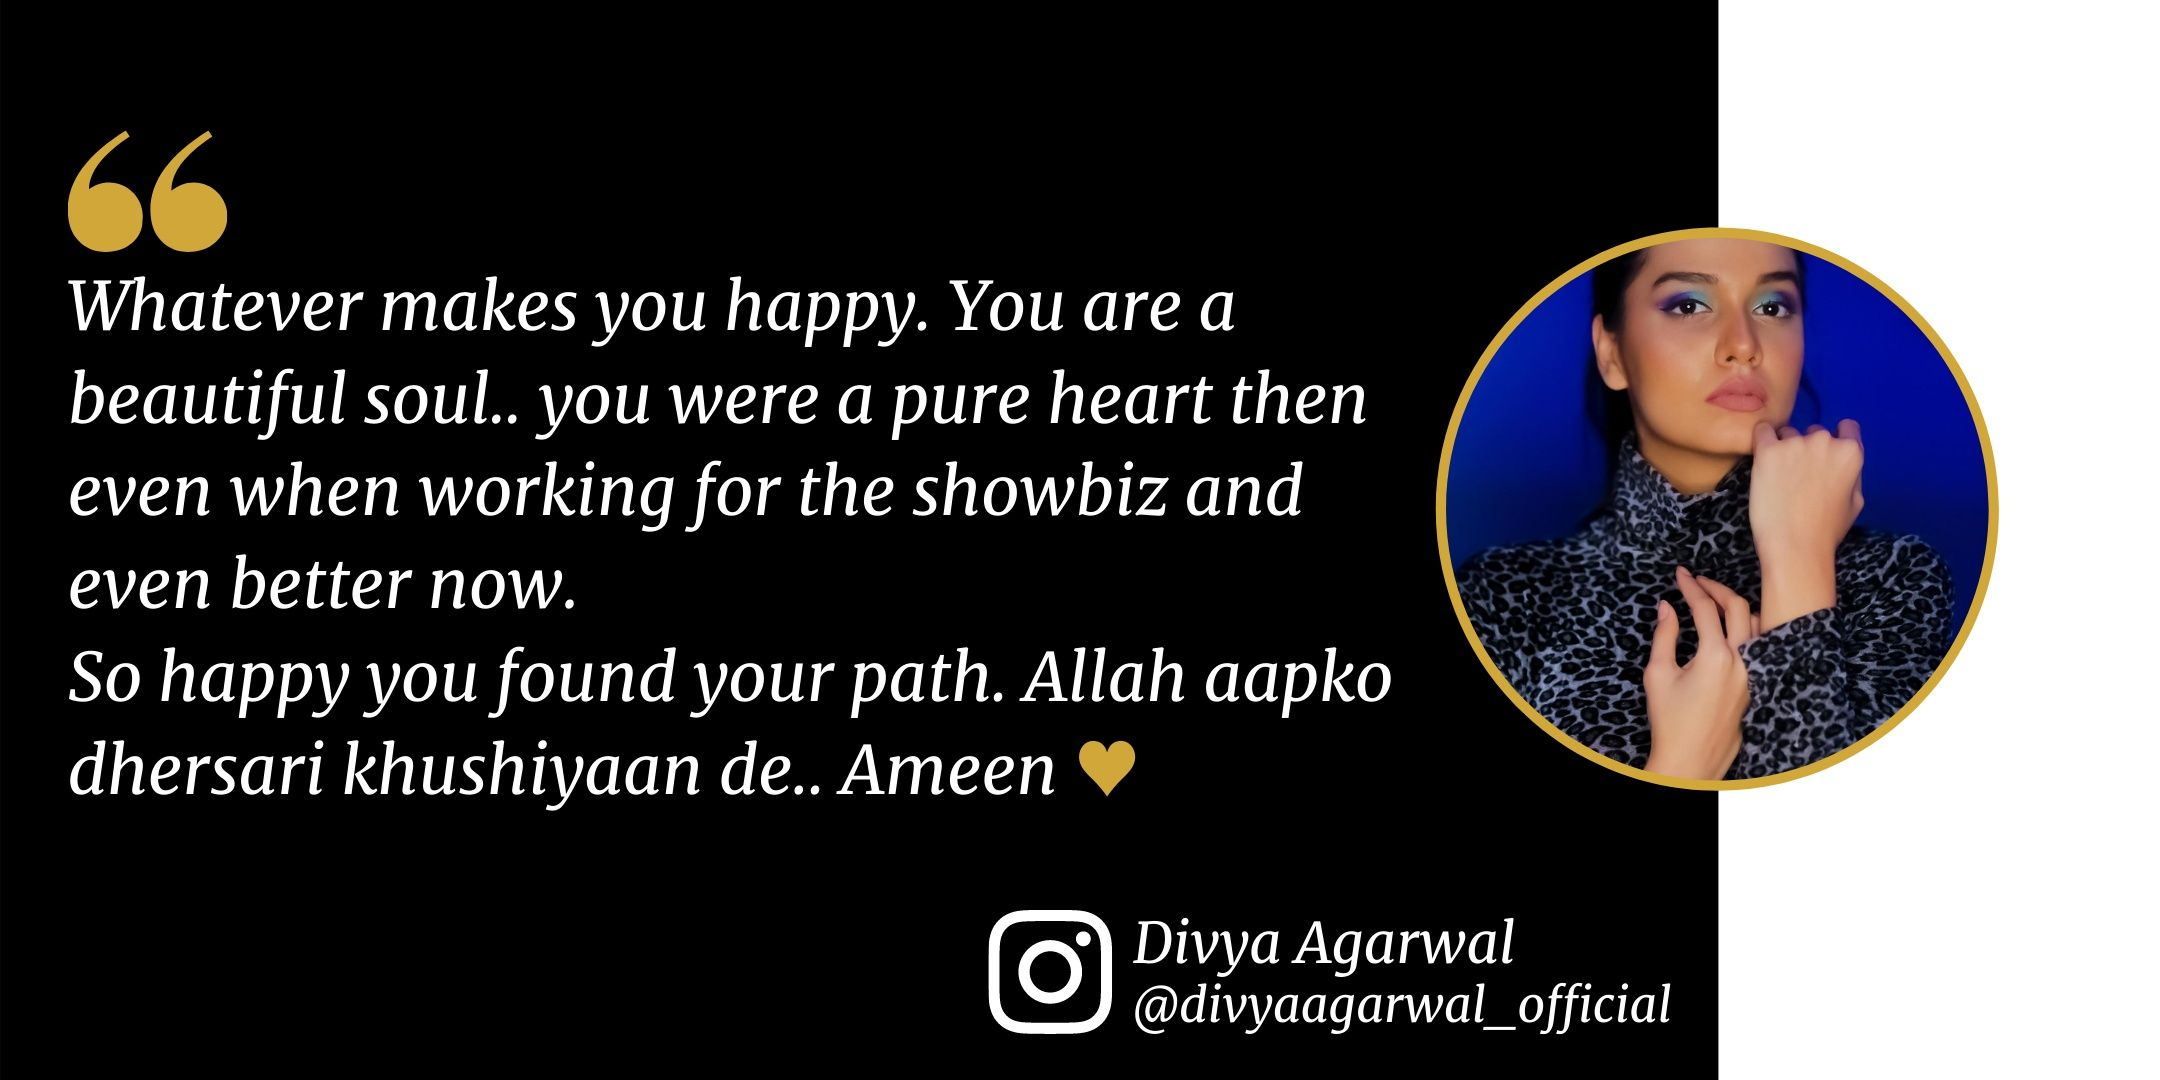 Actress Sana Khan - Divya Agarwal   @divyaagarwal_official  Whatever makes you happy. You are a beautiful soul.. you were a pure heart then even when working for the showbiz and even better now. So happy you found your path. Allah aapko dhersari khushiyaan de.. Ameen ♥️